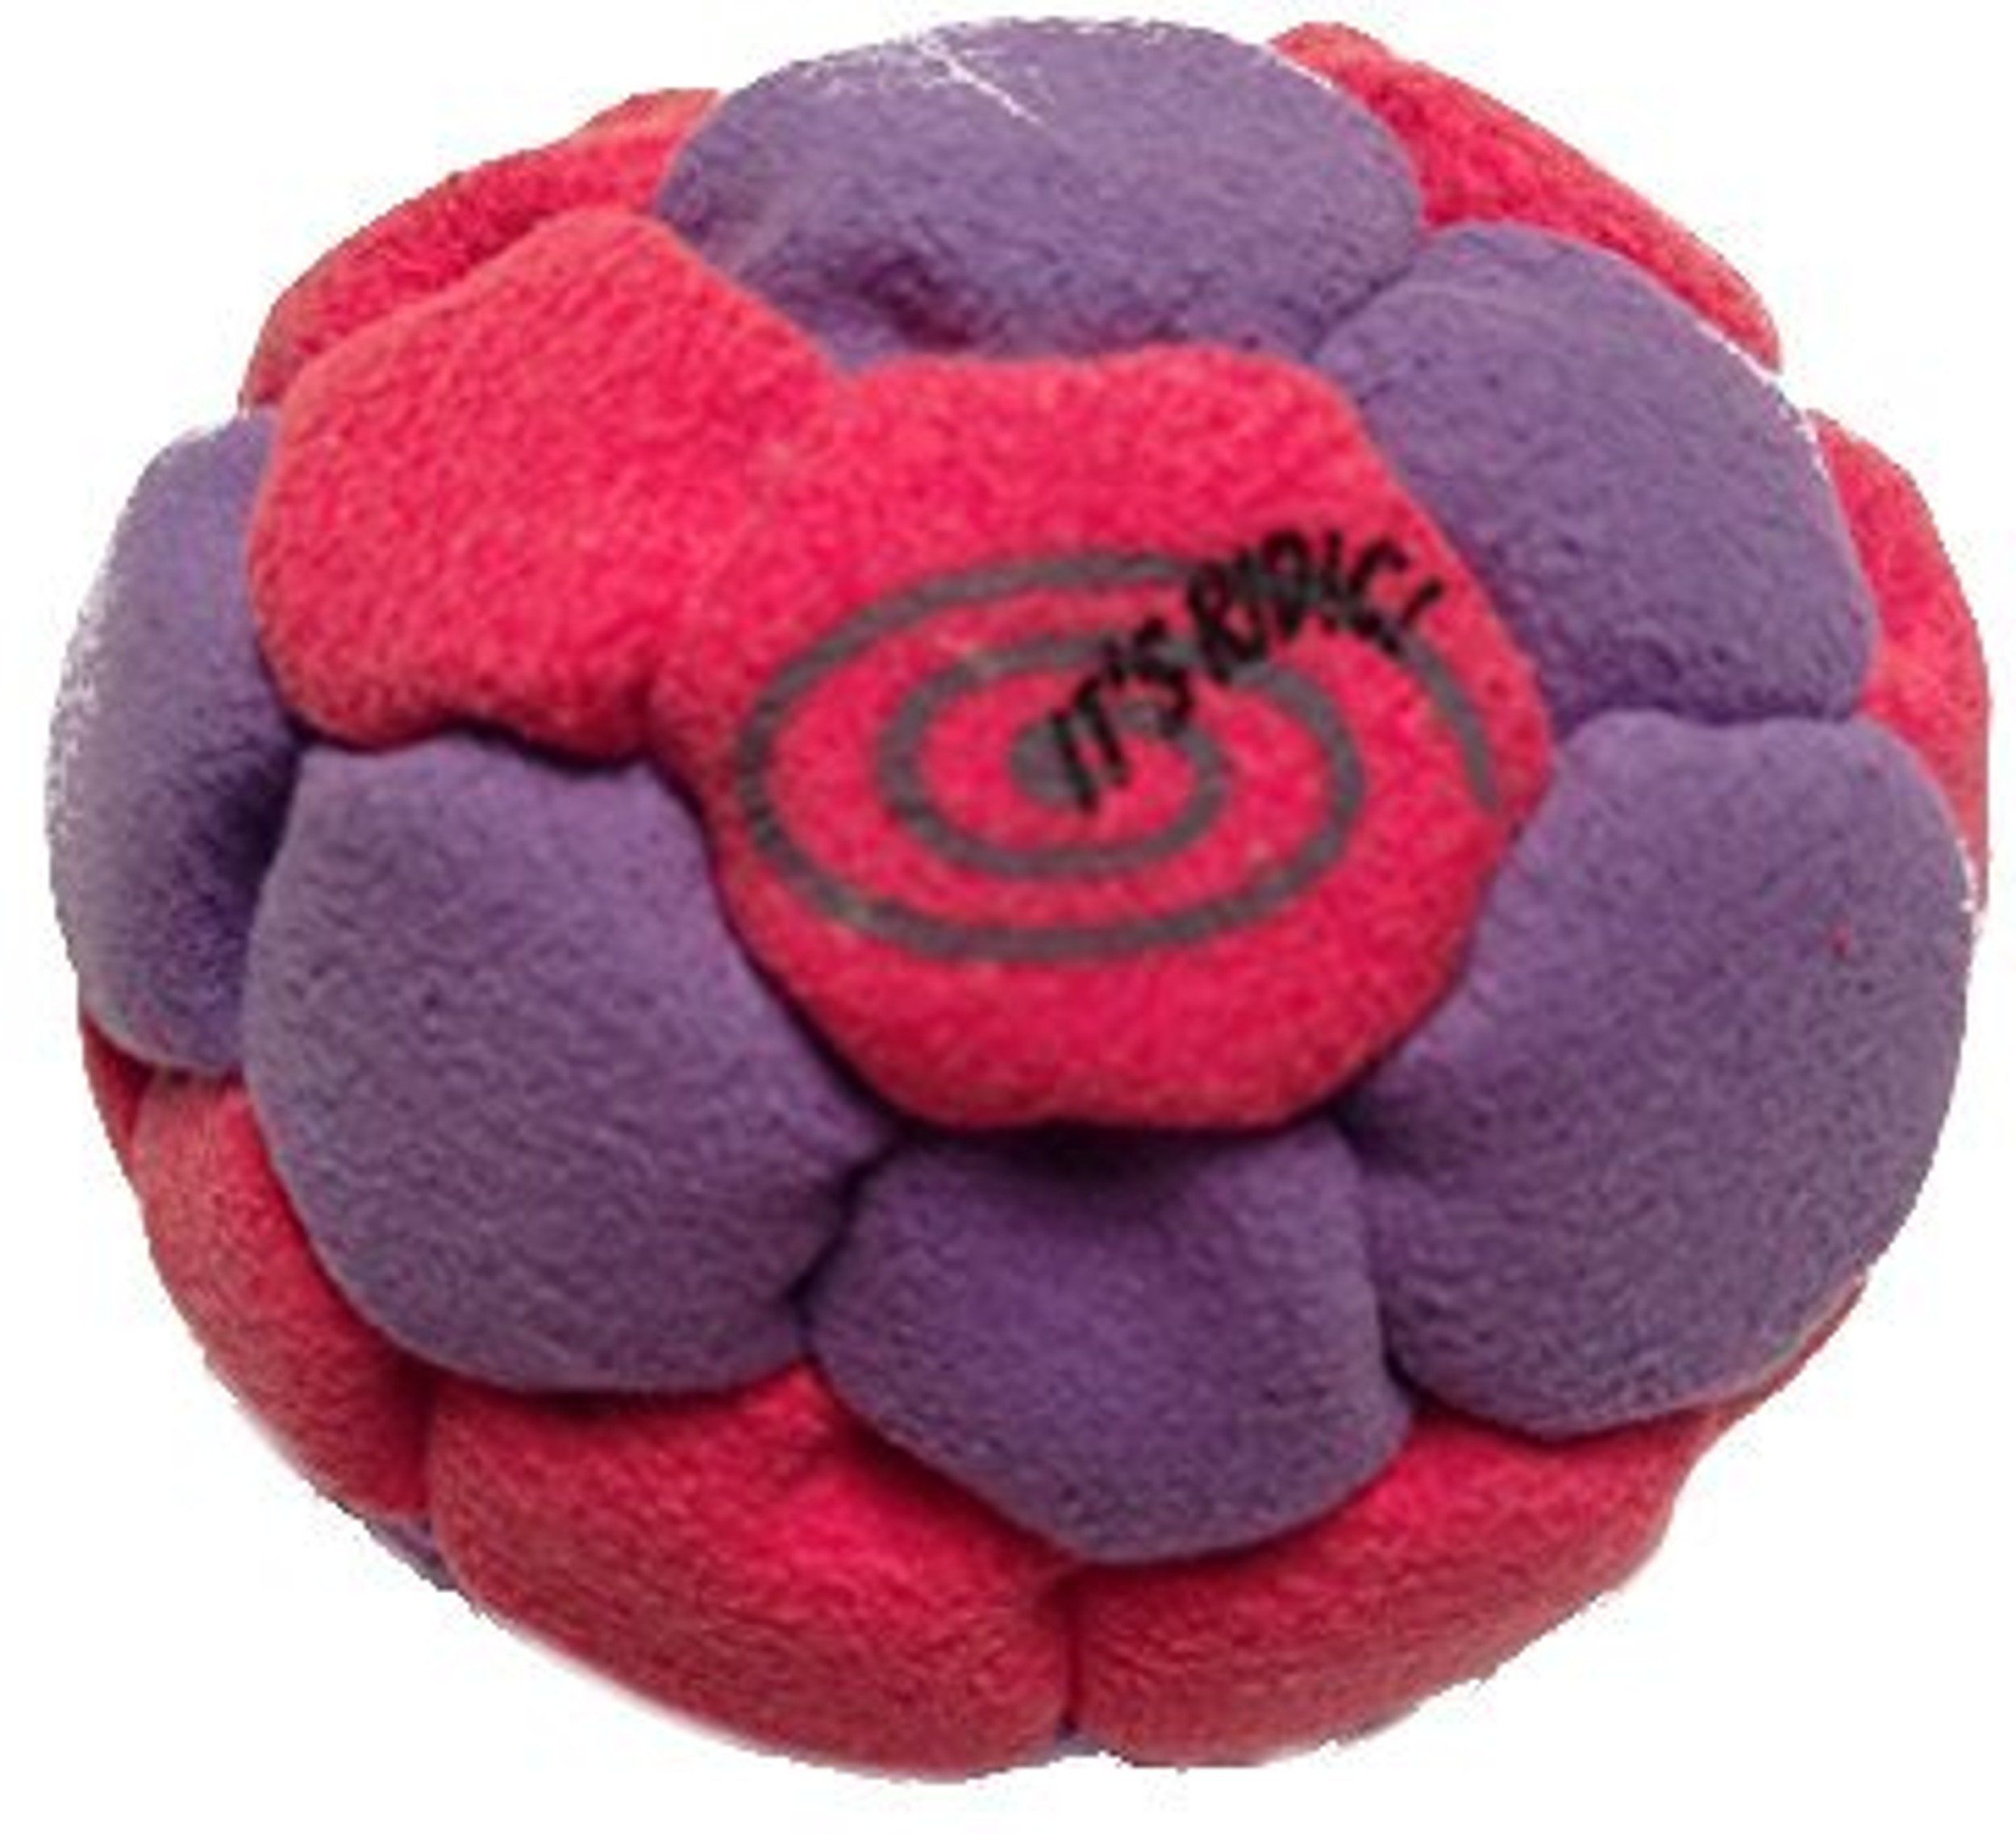 Sand filled footbag / Hacky Sack with 32 panels (With